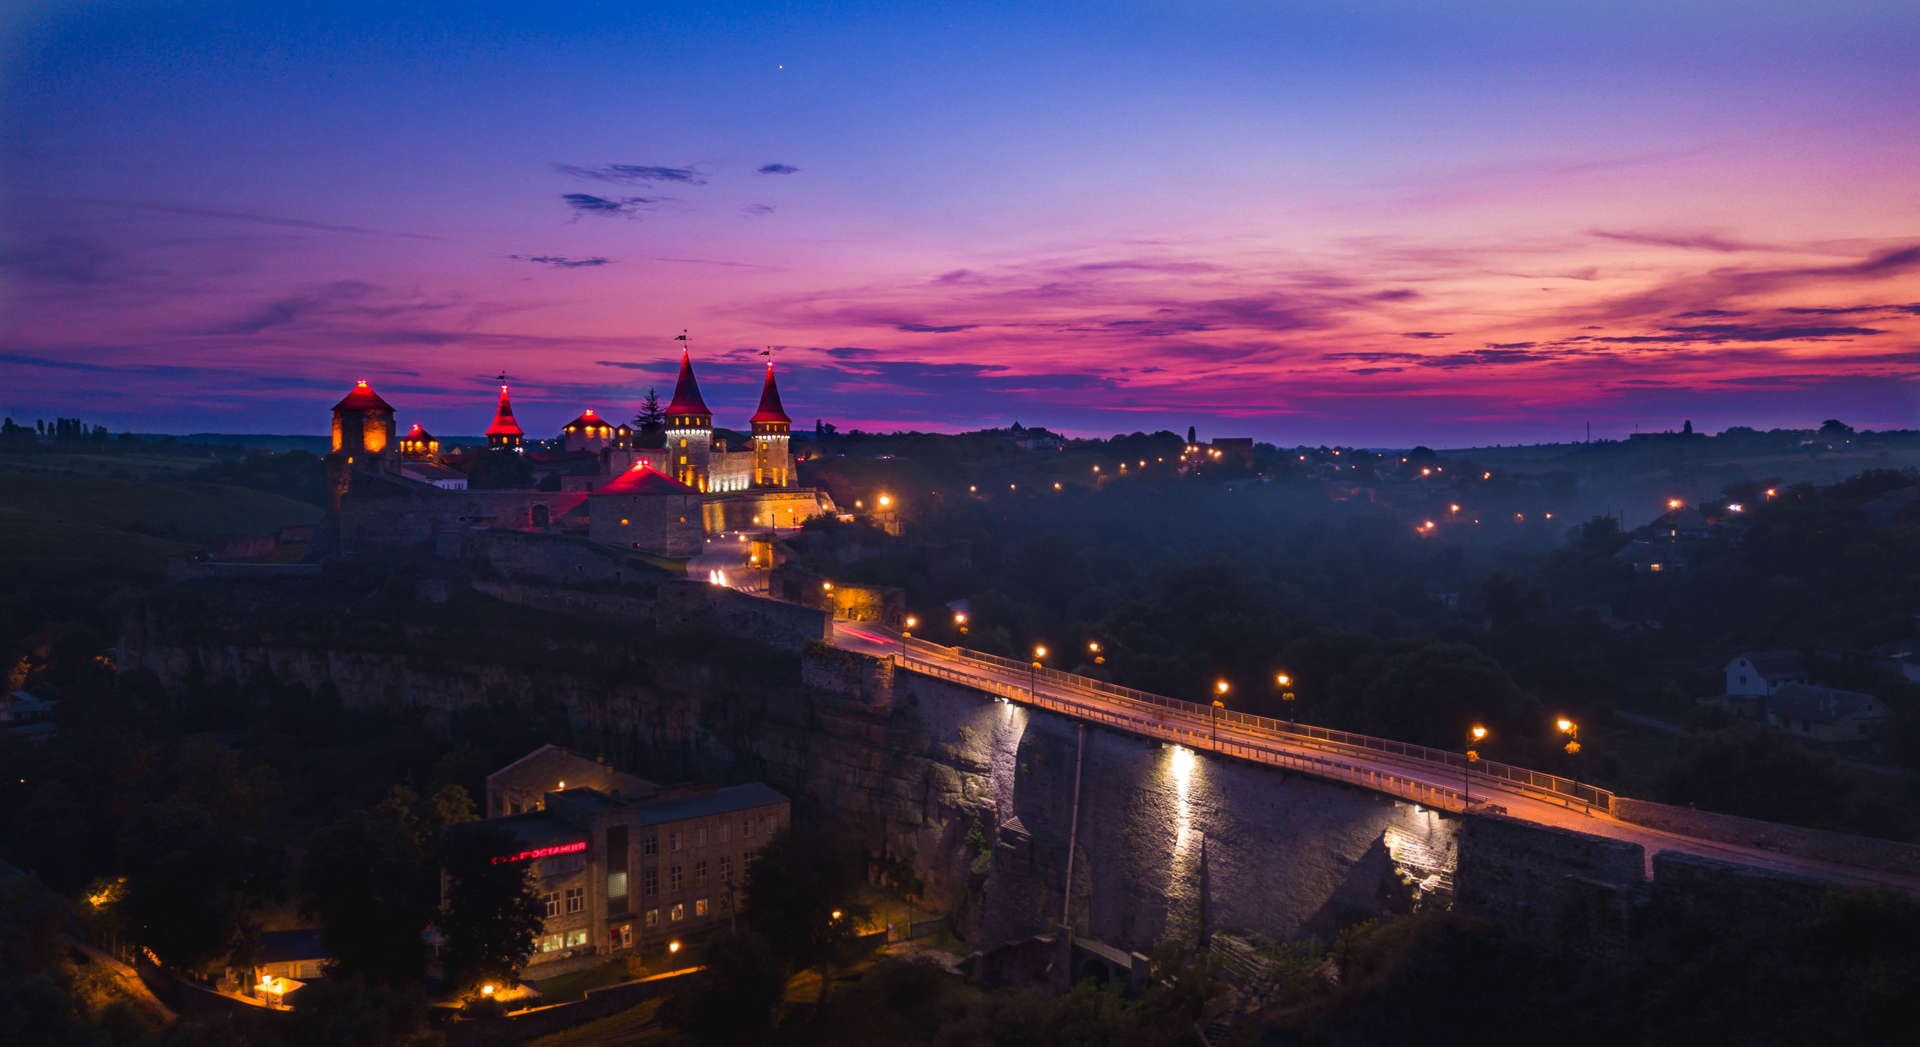 Kamianets-Podilskyi Castle, Kamianets-Podilskyi Castle sunset, Kamianets-Podilskyi Castle backpacking, Kamianets-Podilskyi Castle best photo, Kamianets-Podilskyi Castle tent, Kamianets-Podilskyi Castle wild camping, Kamianets-Podilskyi, best sunset picture, sunset over castle, sunset ukraine, ukraine wild camping, ukraine travel, ukraine backpacker, seven wonders of ukraine, shorts-trip, Kamianets-Podilskyi Castle drone, aerial view of Kamianets-Podilskyi